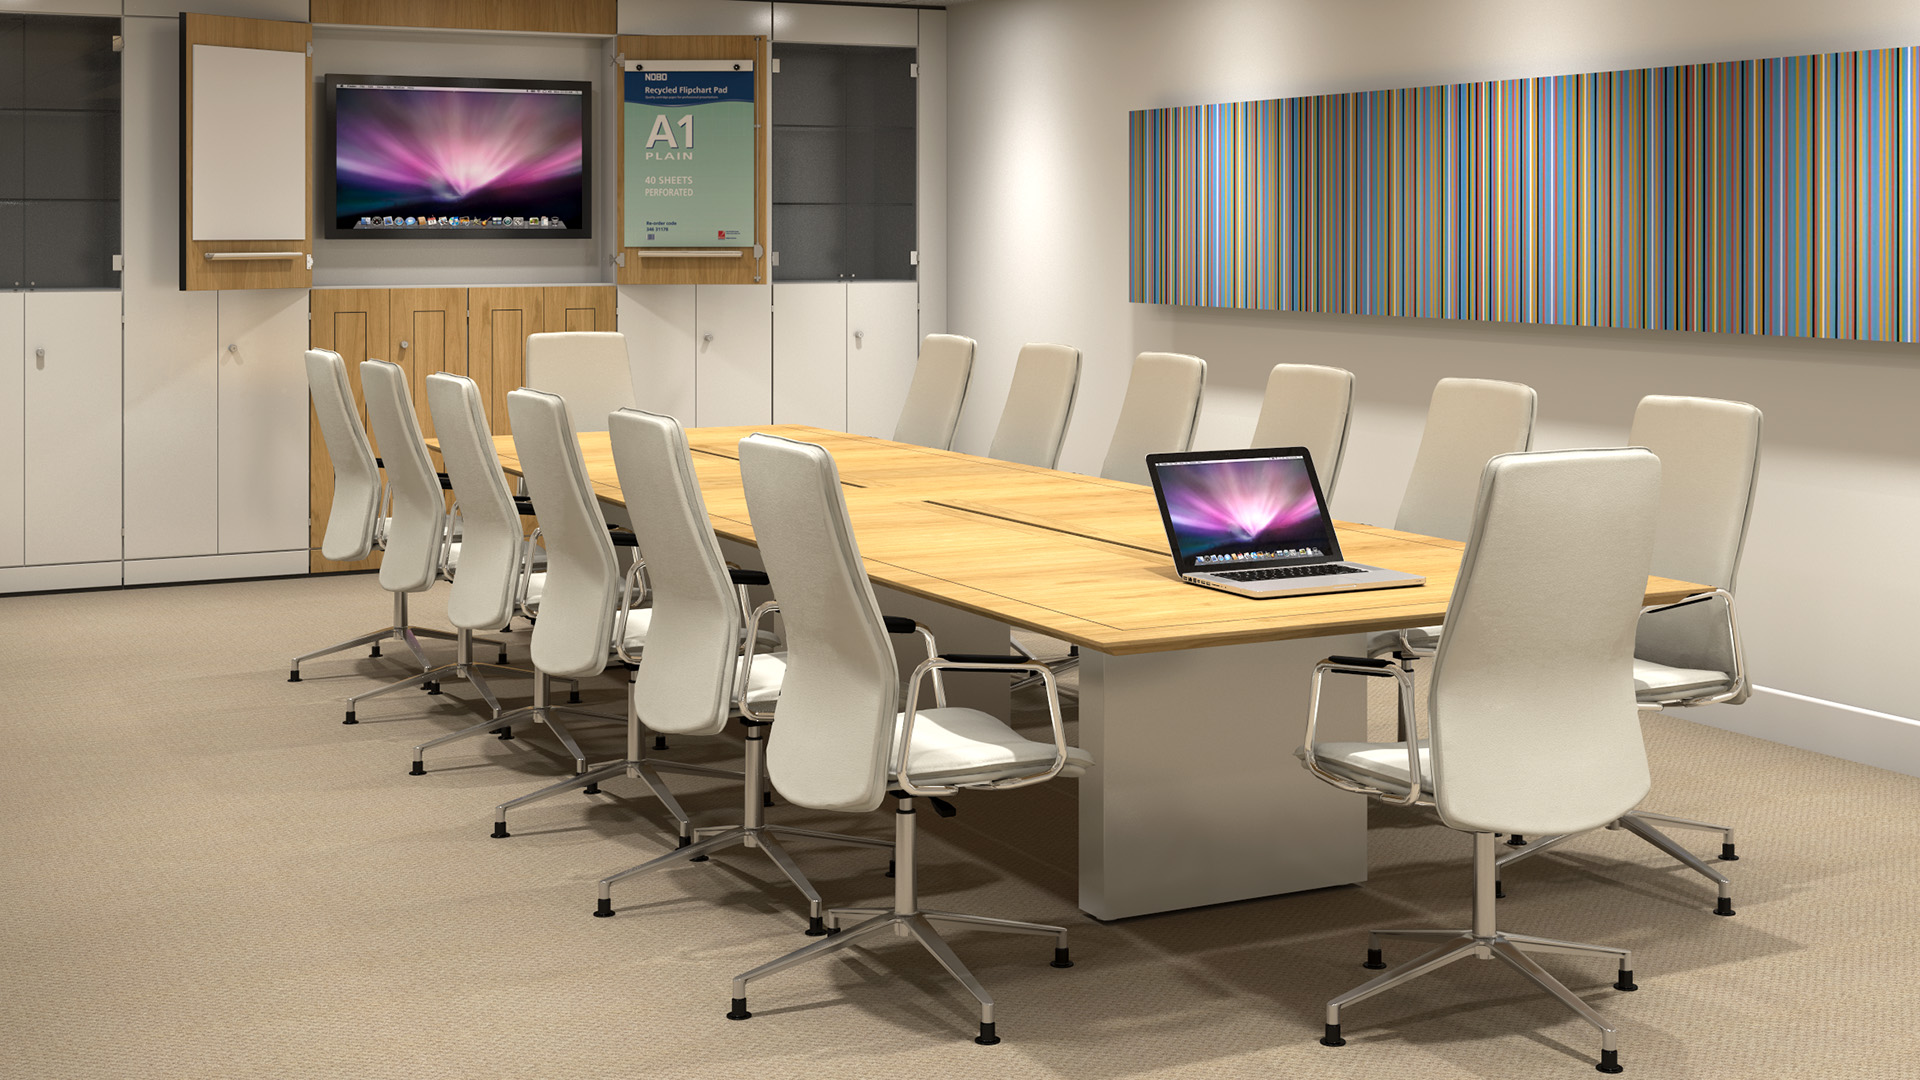 Sven Christiansen Boardroom Furniture with display and laptop